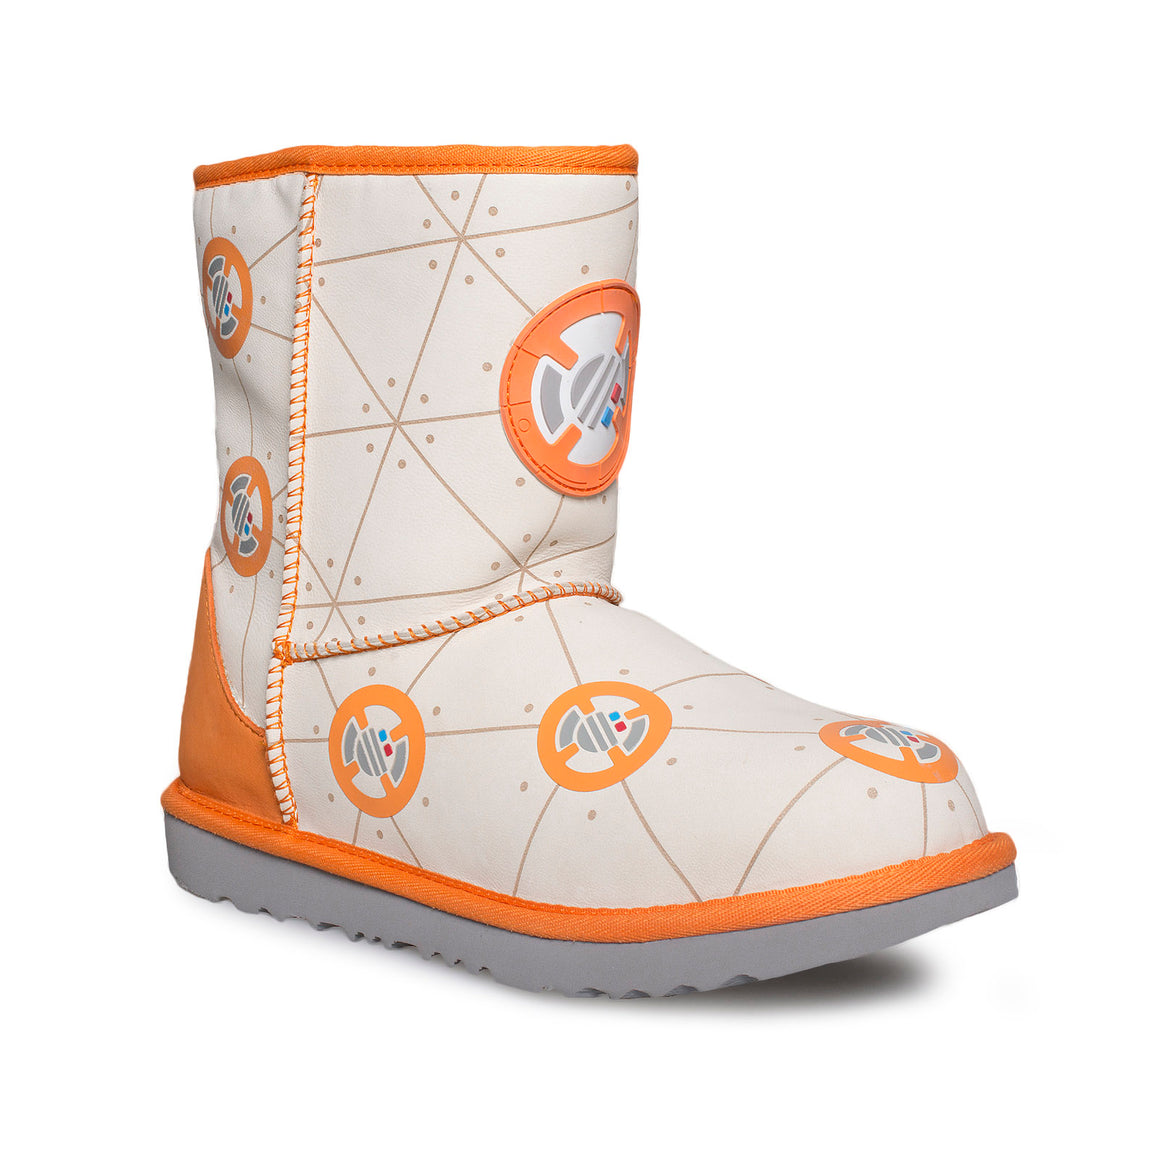 UGG Star Wars Classic II BB-8 Droid Orange Boots